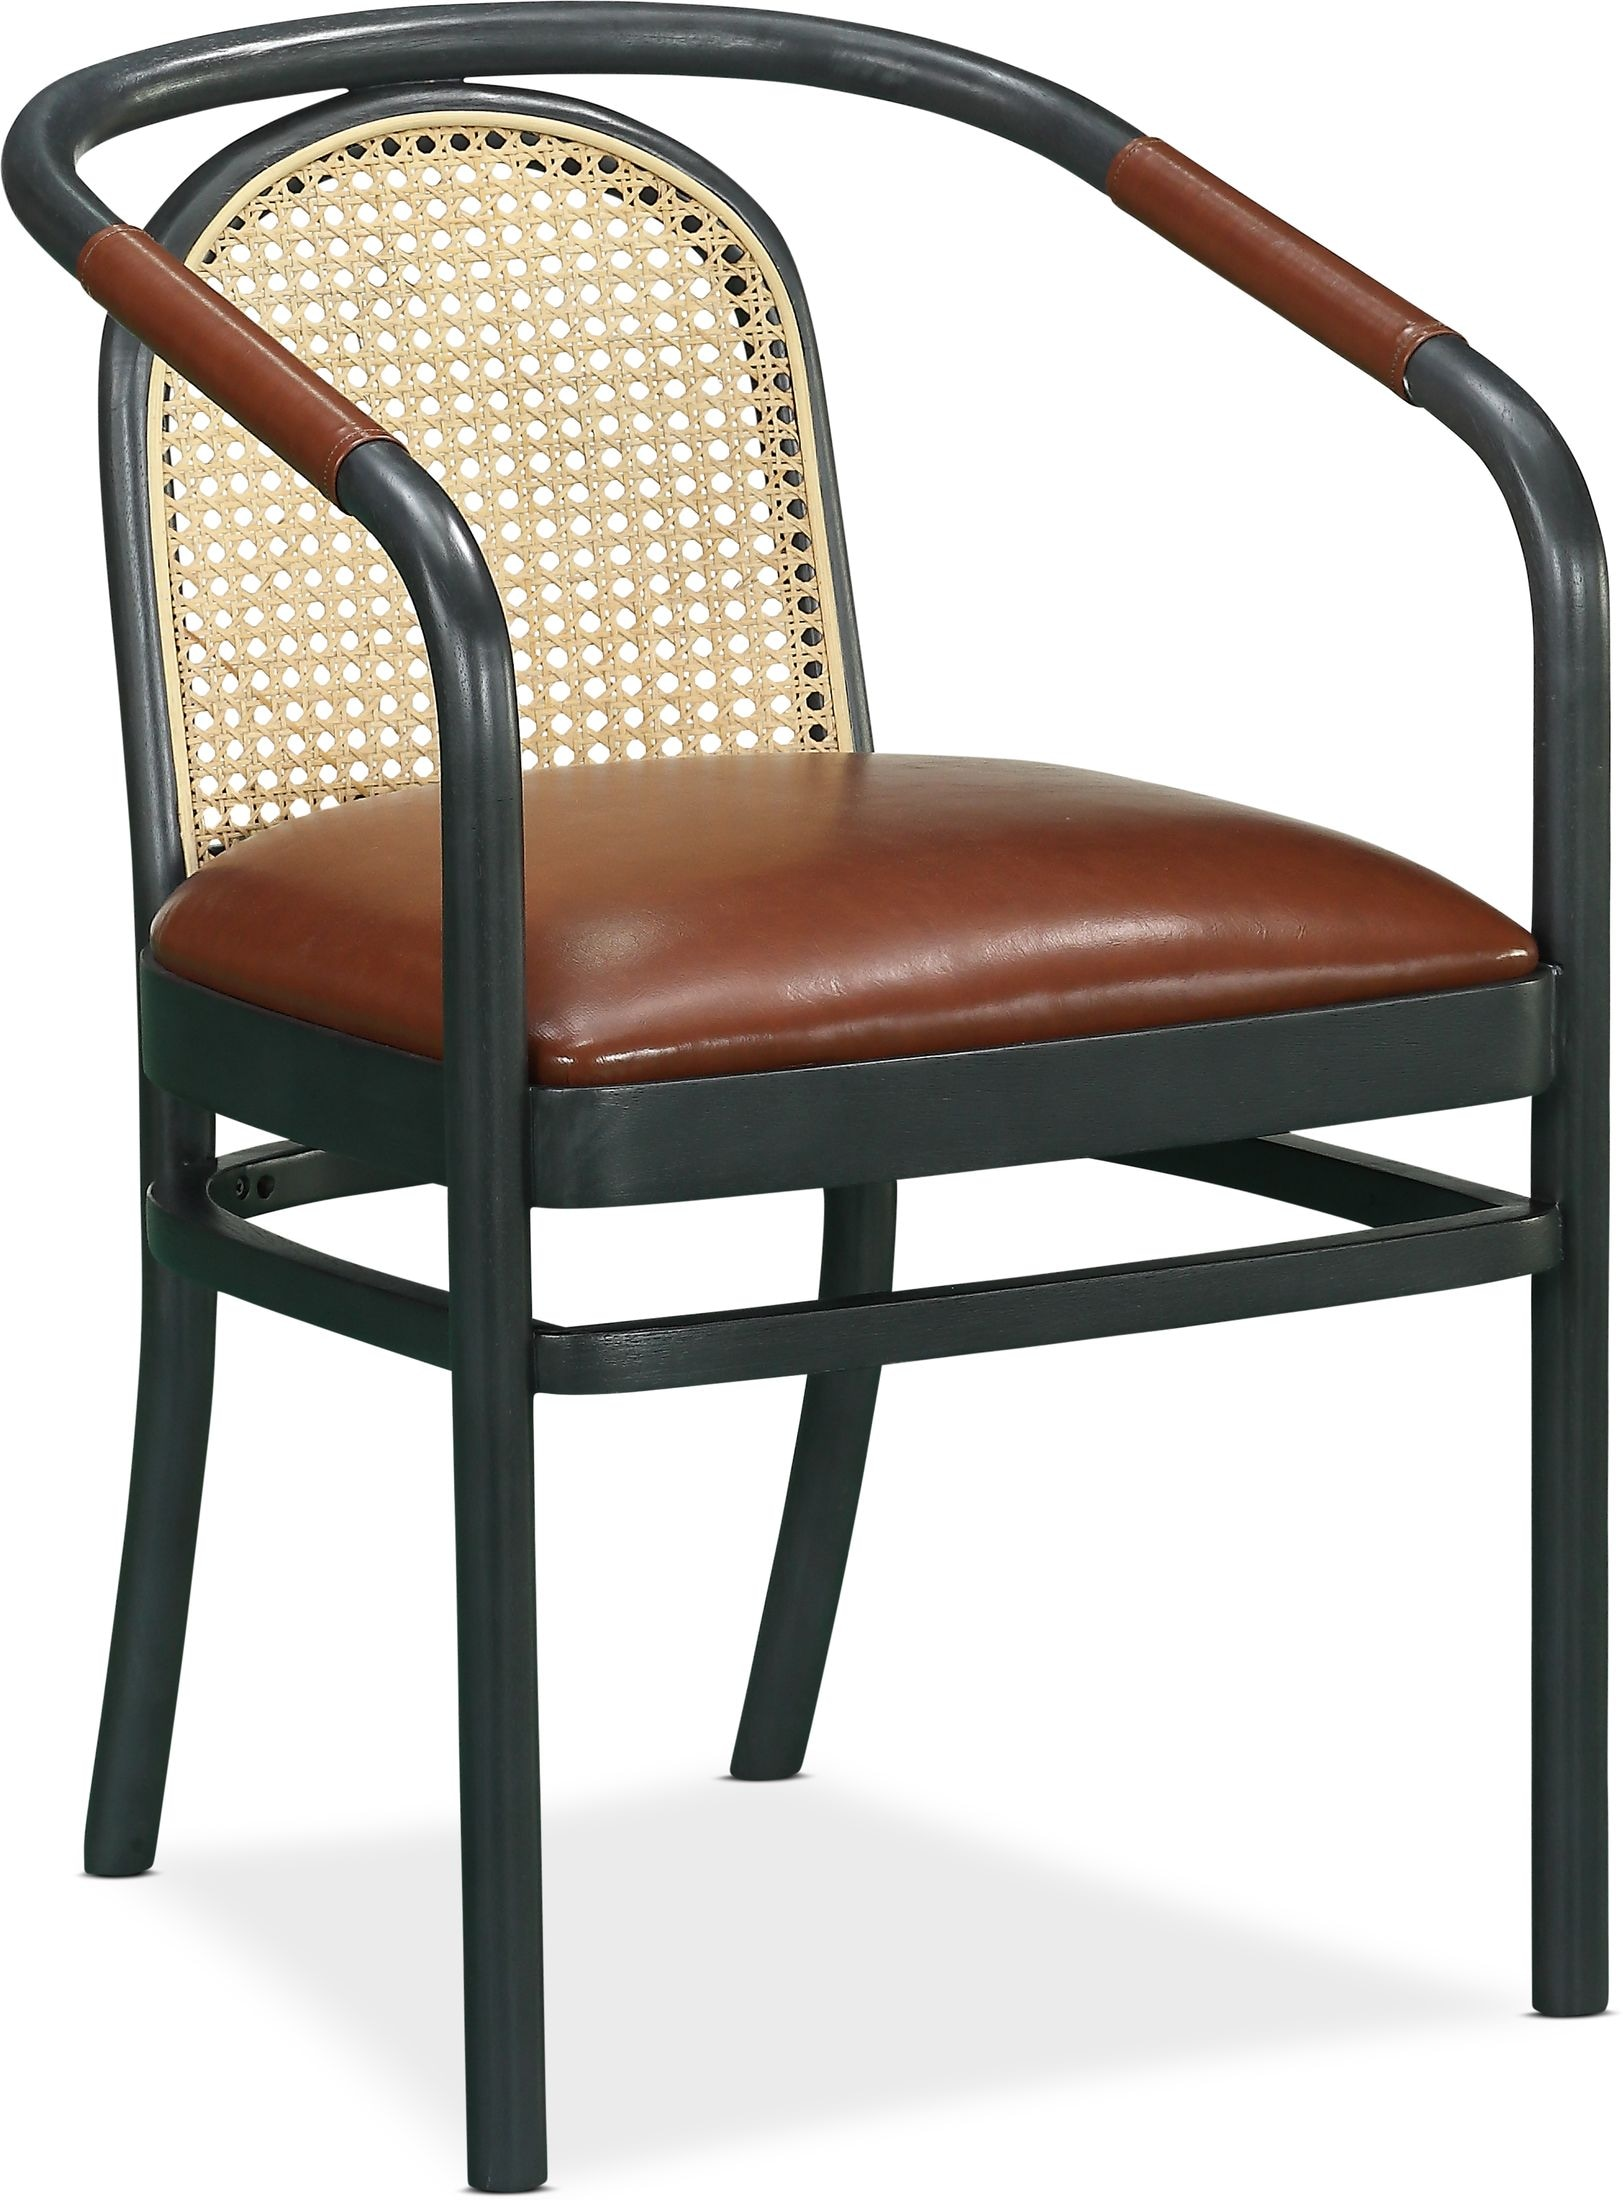 Dining Room Furniture - Bobby Berk Moller Arm Chair